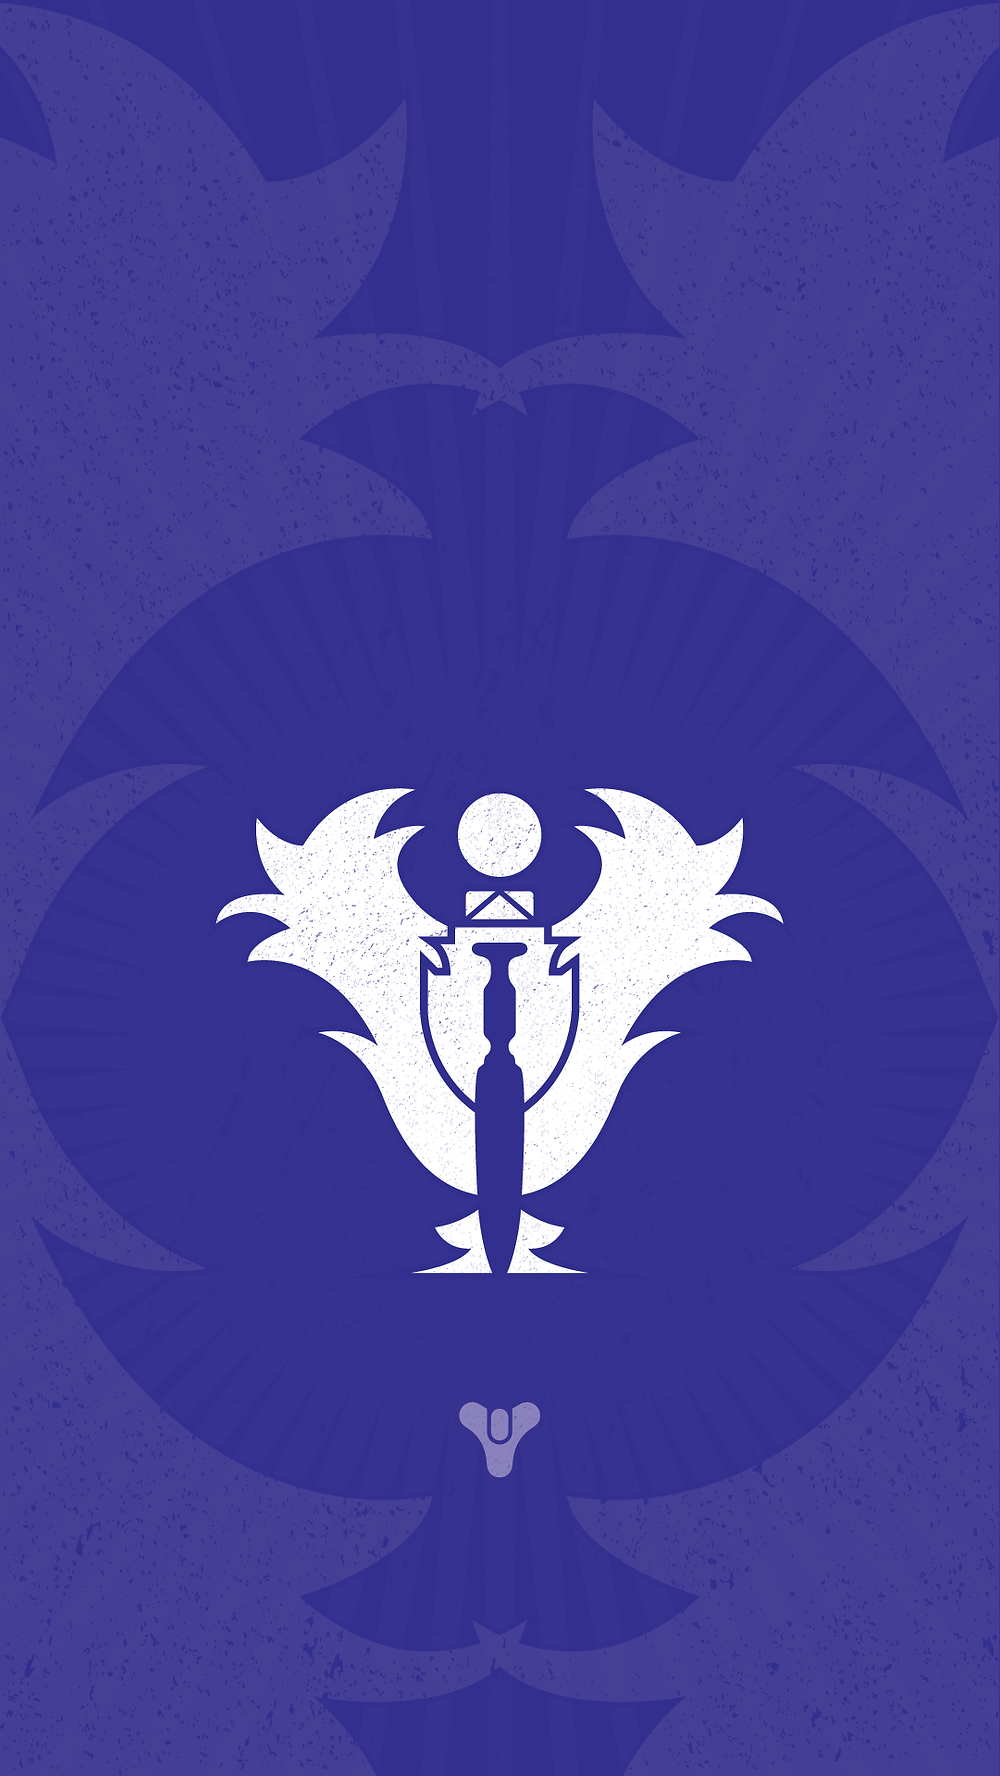 •CREST_OF_THE_GRAVESINGER_-_1080x1920.png